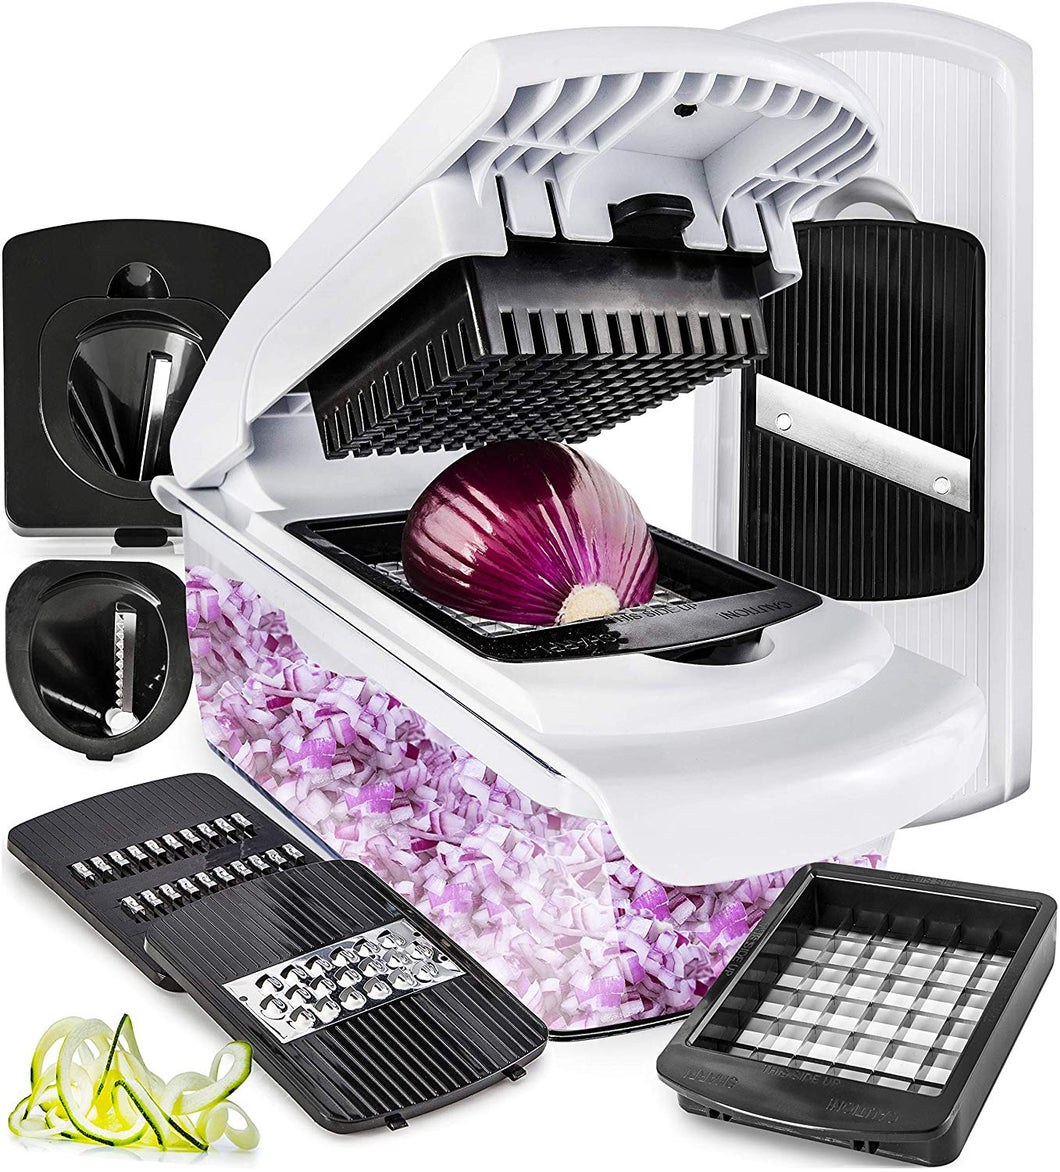 Fullstar Vegetable Chopper Dicer Mandoline Slicer - Food Chopper Vegetable Spiralizer Vegetable Slicer - Onion Chopper Salad Chopper Veggie Chopper Vegetable Cutter Food Slicer 7 Blades